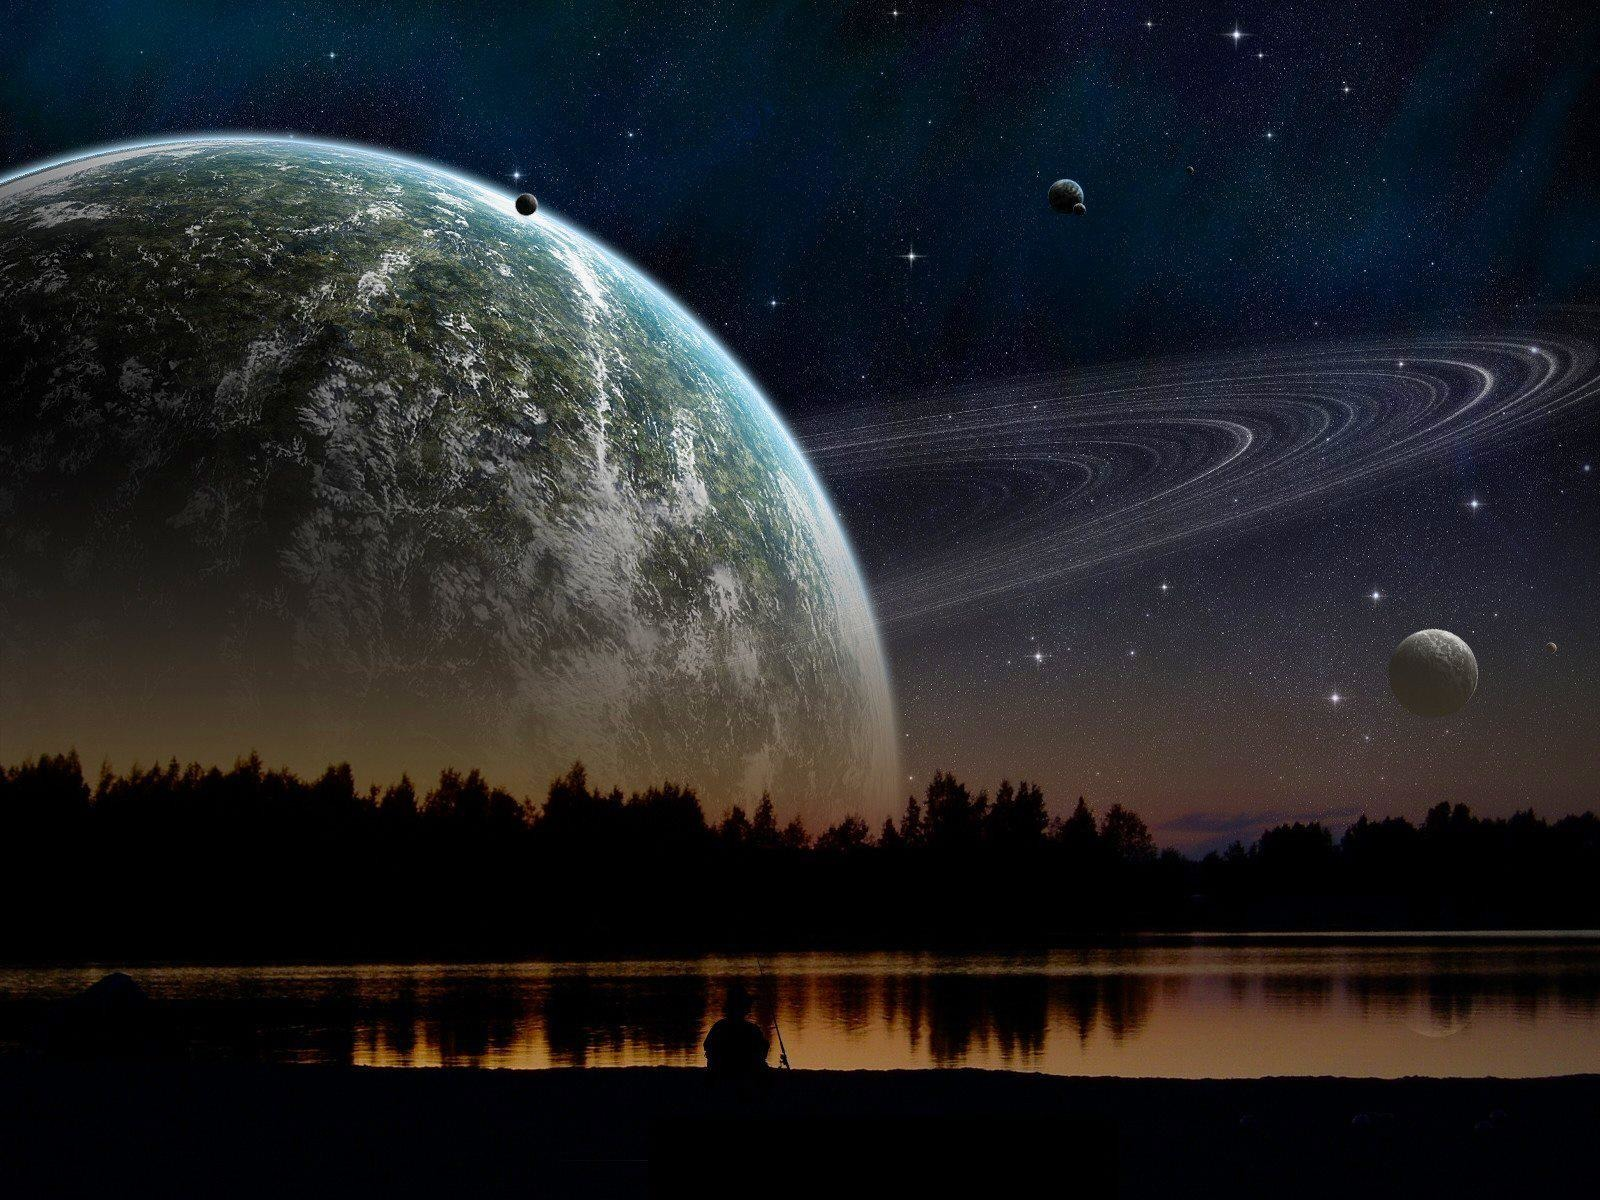 If Saturn was as close to Earth as the Moon